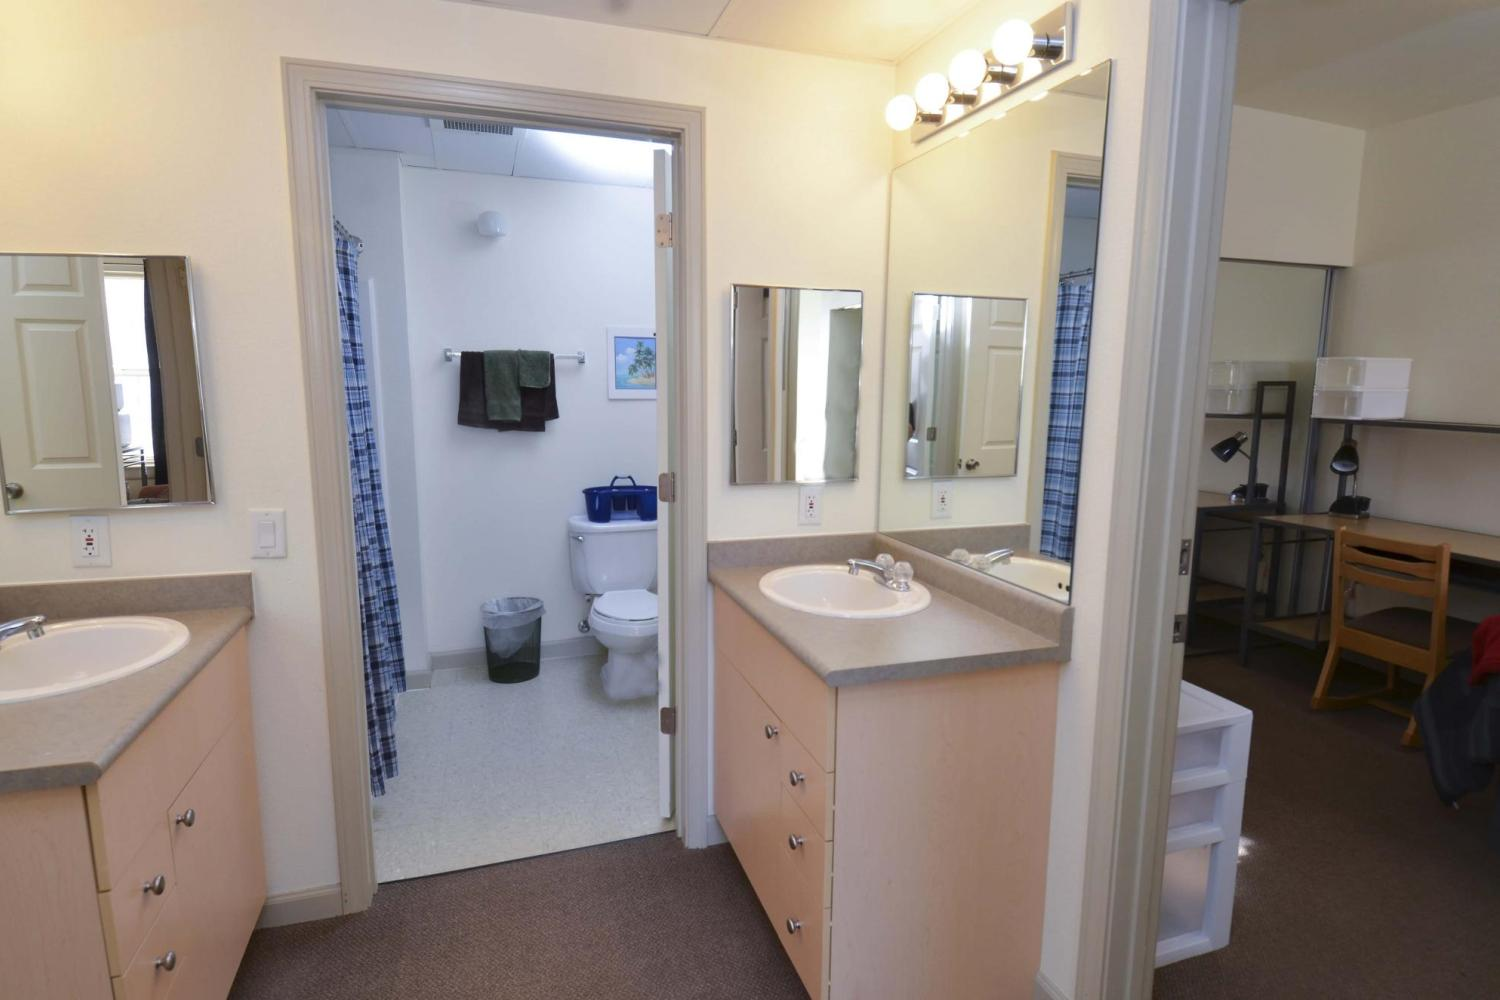 Bathroom area with two vanities and one shower area